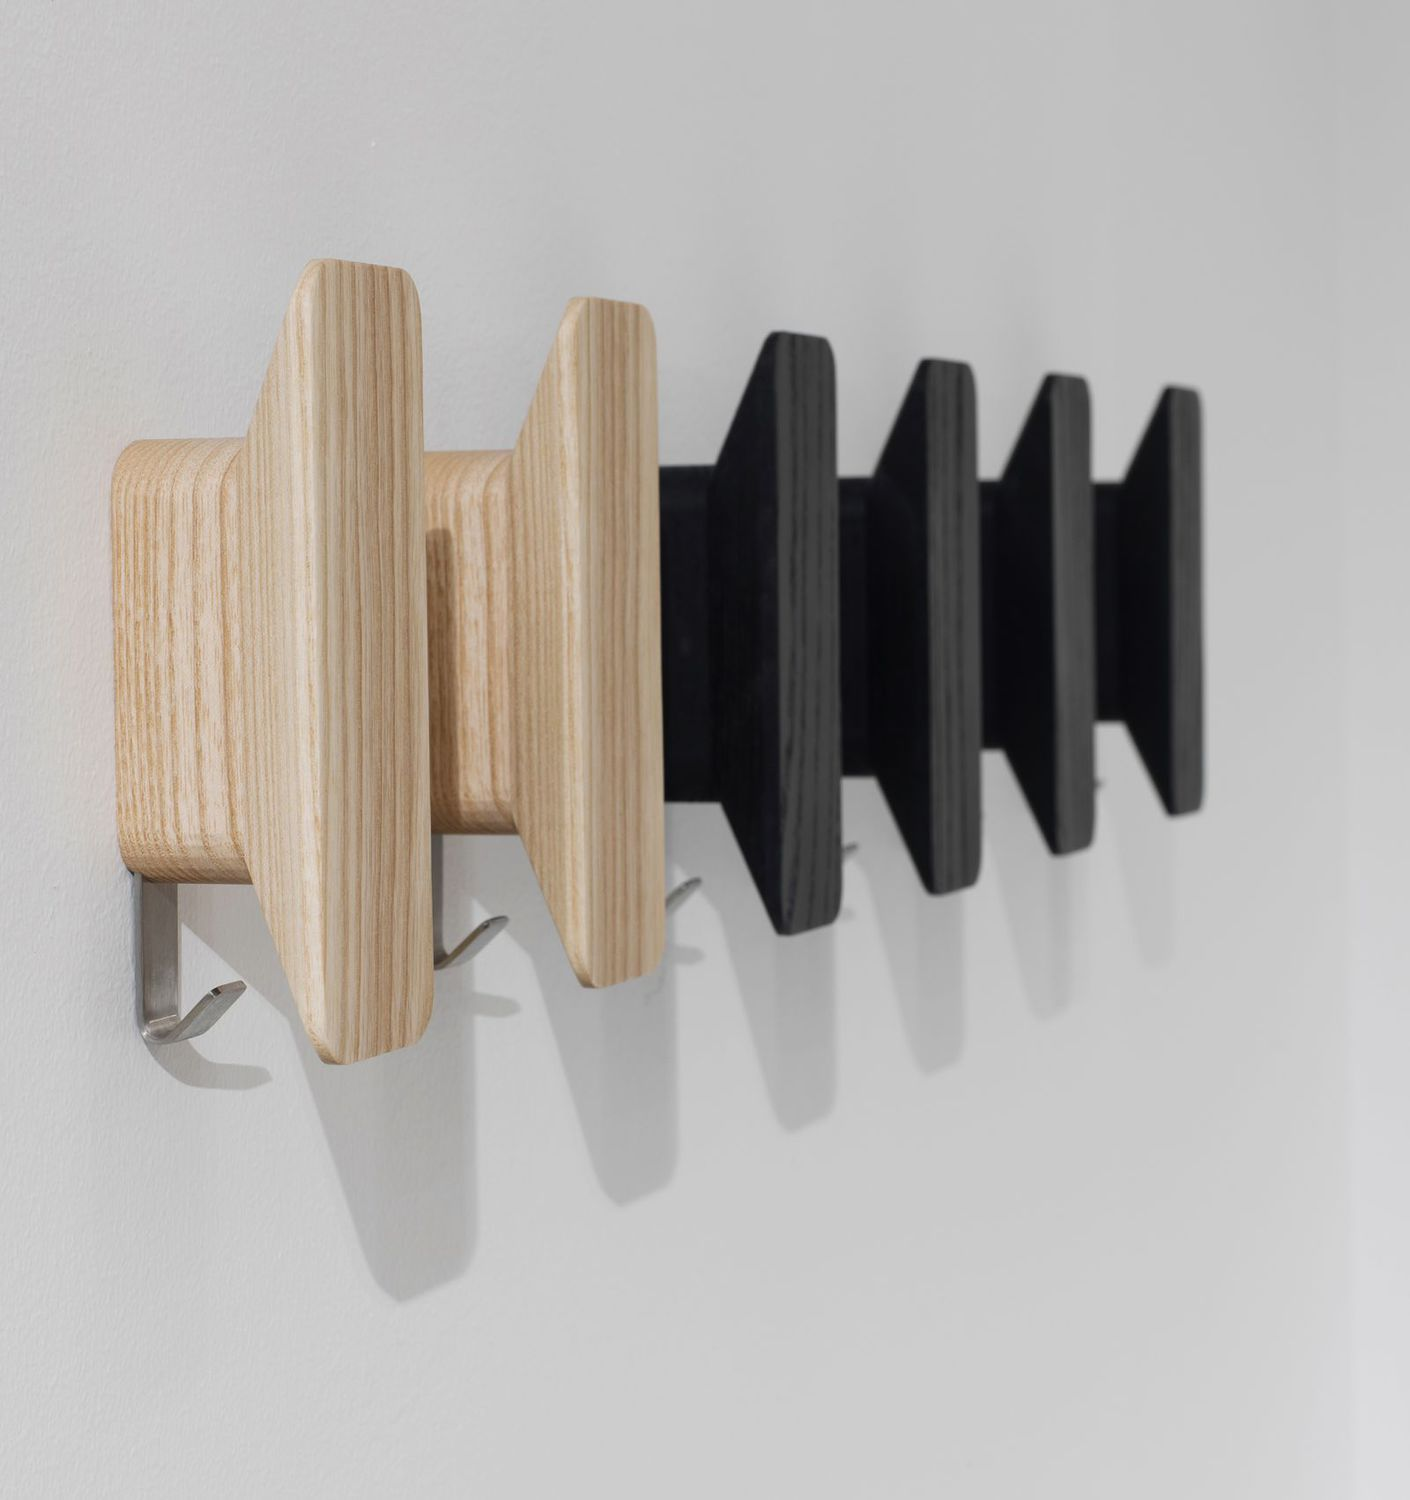 contemporary coat hook  stainless steel  wooden  double  plane  -  contemporary coat hook  stainless steel  wooden  double plane bygino carollo davis